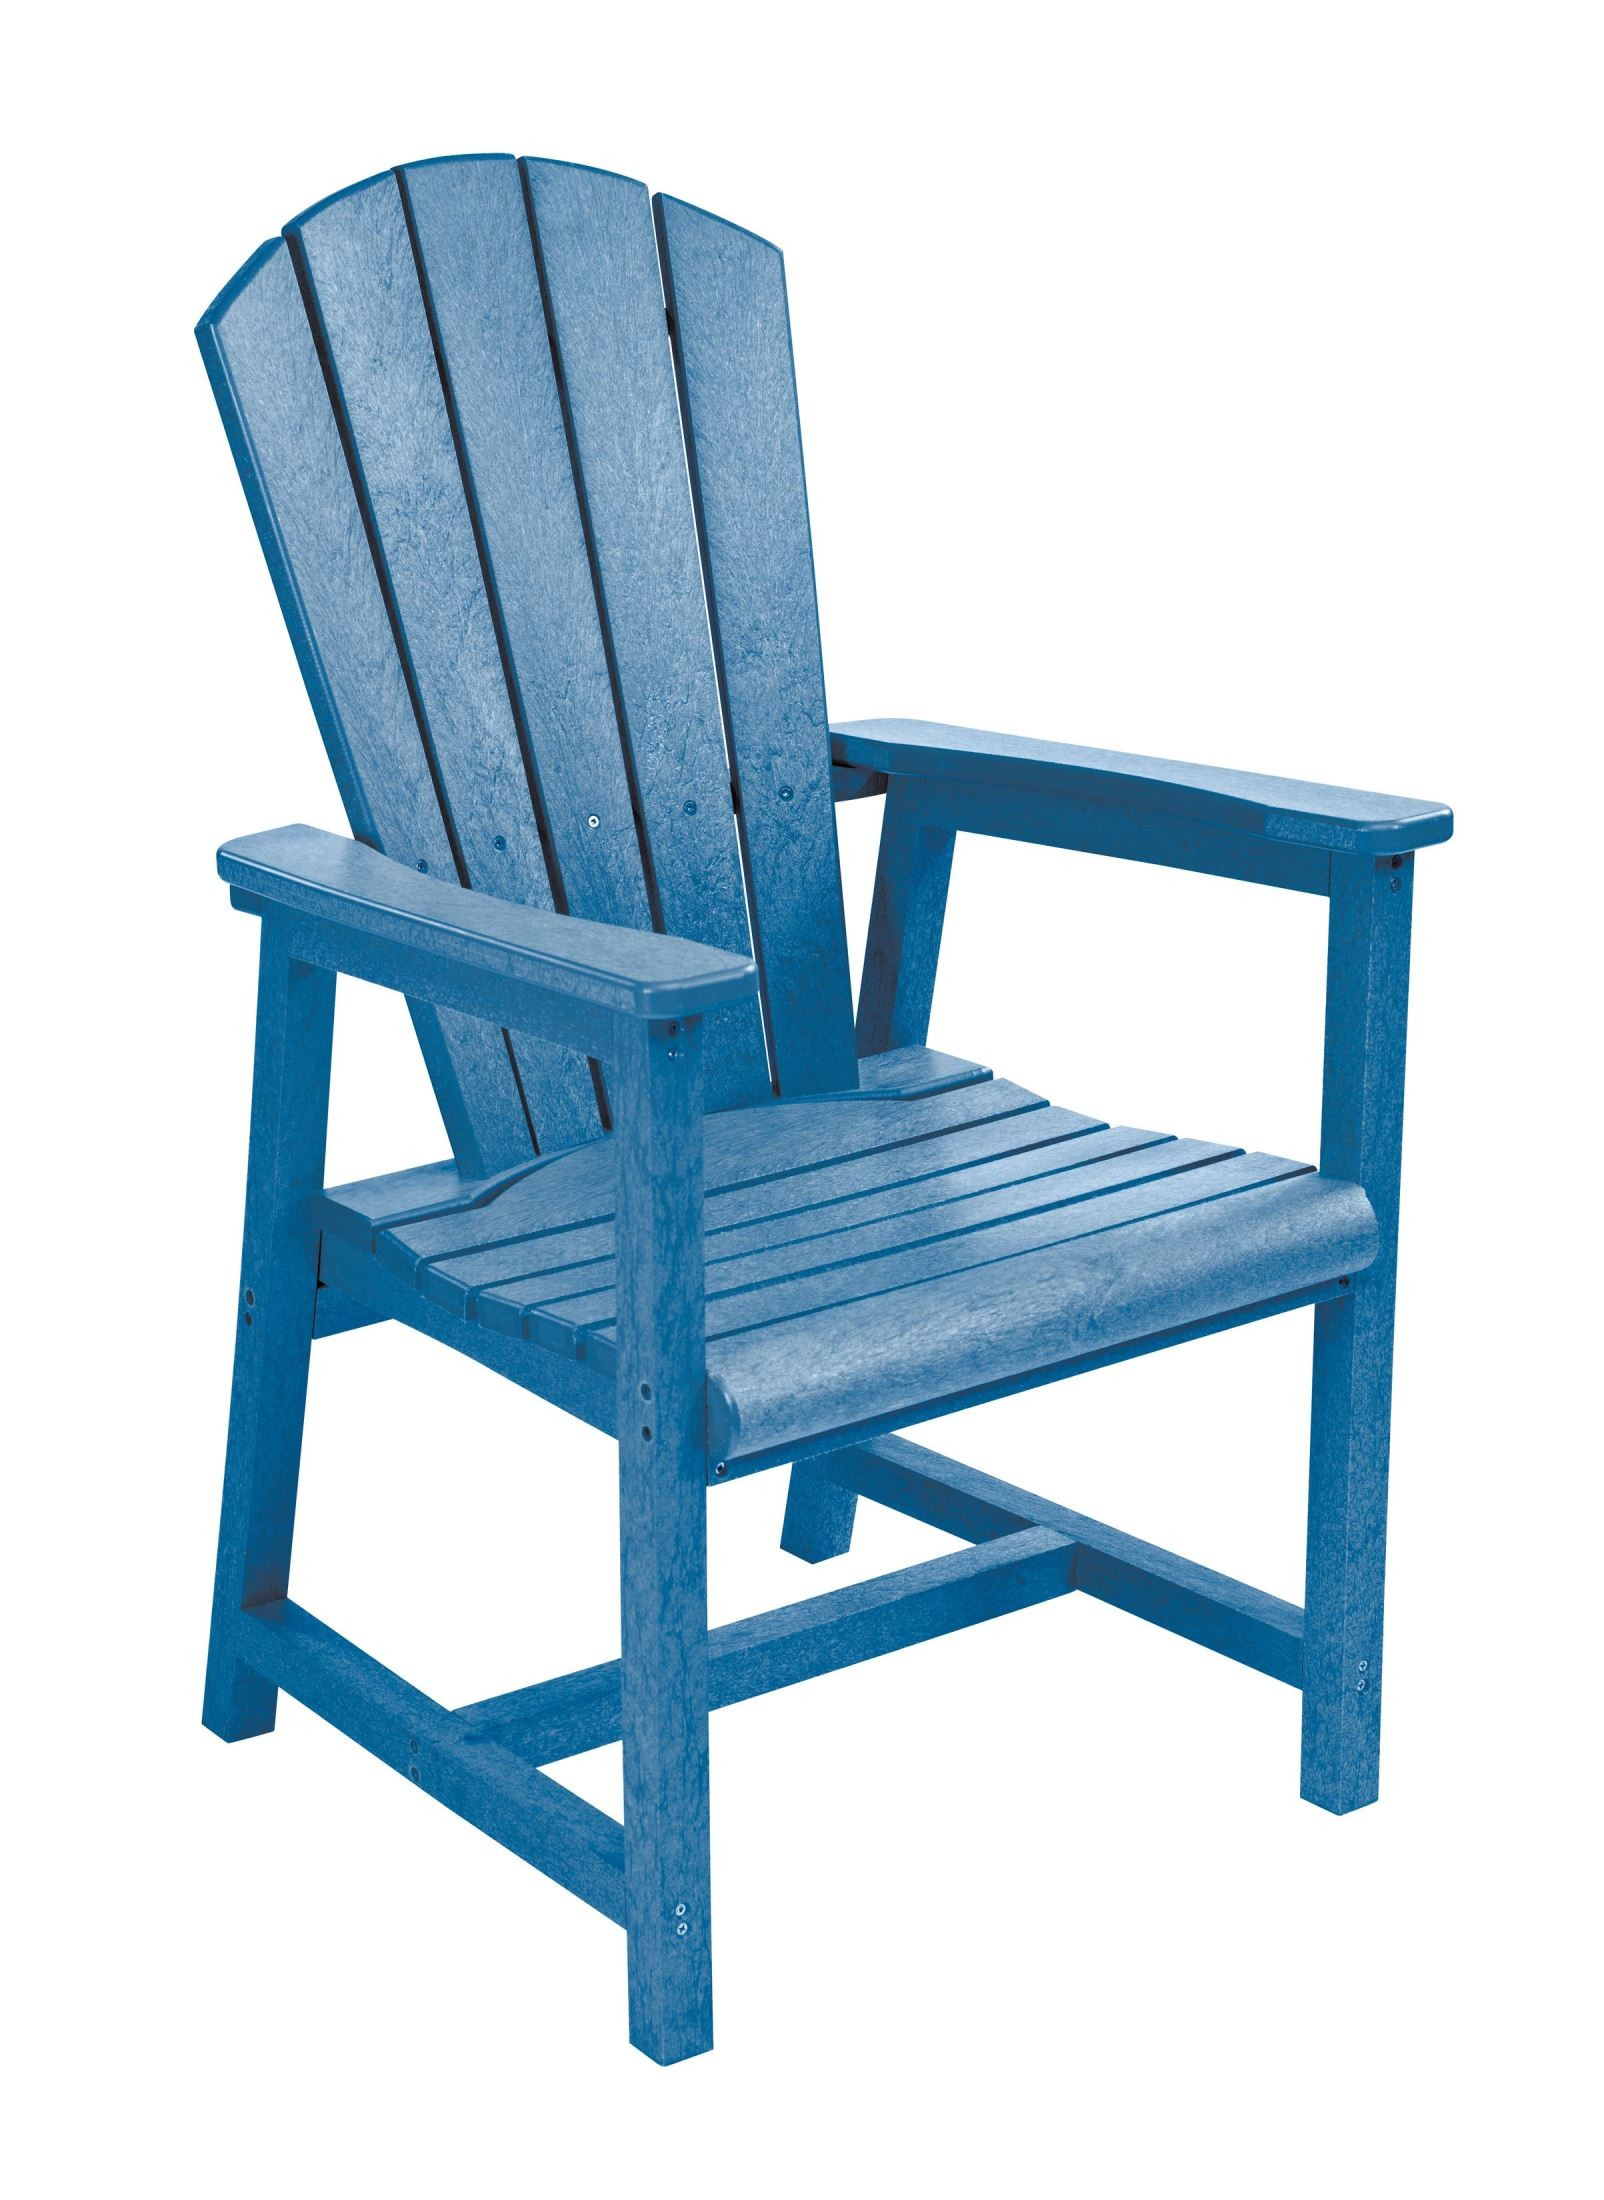 Blue Adirondack Chair Generations Blue Adirondack Dining Arm Chair From Cr